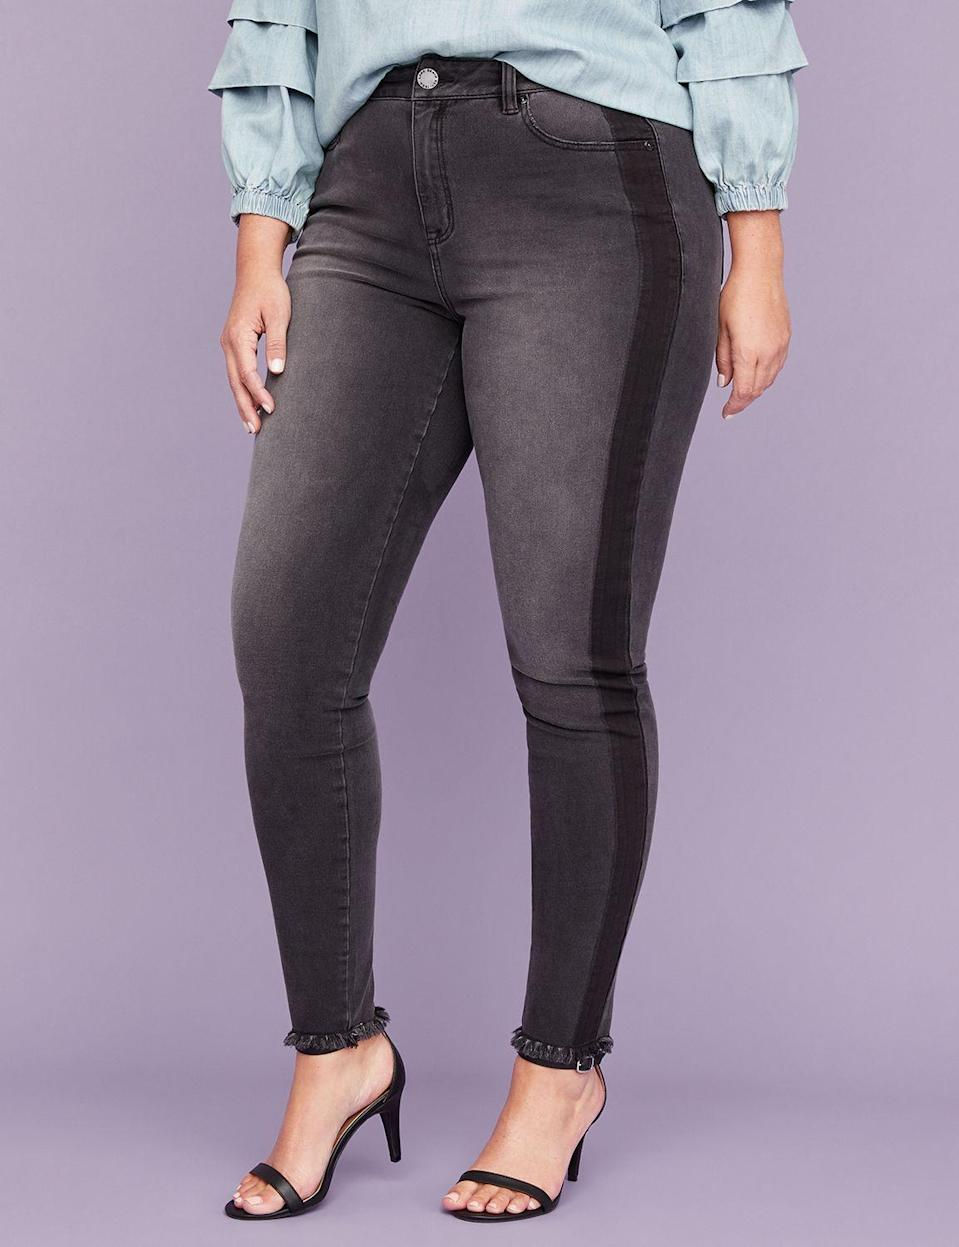 "<p><a href=""https://fave.co/2QEBabf"" rel=""nofollow noopener"" target=""_blank"" data-ylk=""slk:Shop it:"" class=""link rapid-noclick-resp""><strong>Shop it:</strong> </a>Ultimate Stretch Skinny Jean in Black Tuxedo Stripe, $40 (was $79),<a href=""https://fave.co/2QEBabf"" rel=""nofollow noopener"" target=""_blank"" data-ylk=""slk:lanebryant.com"" class=""link rapid-noclick-resp""> lanebryant.com </a> </p>"